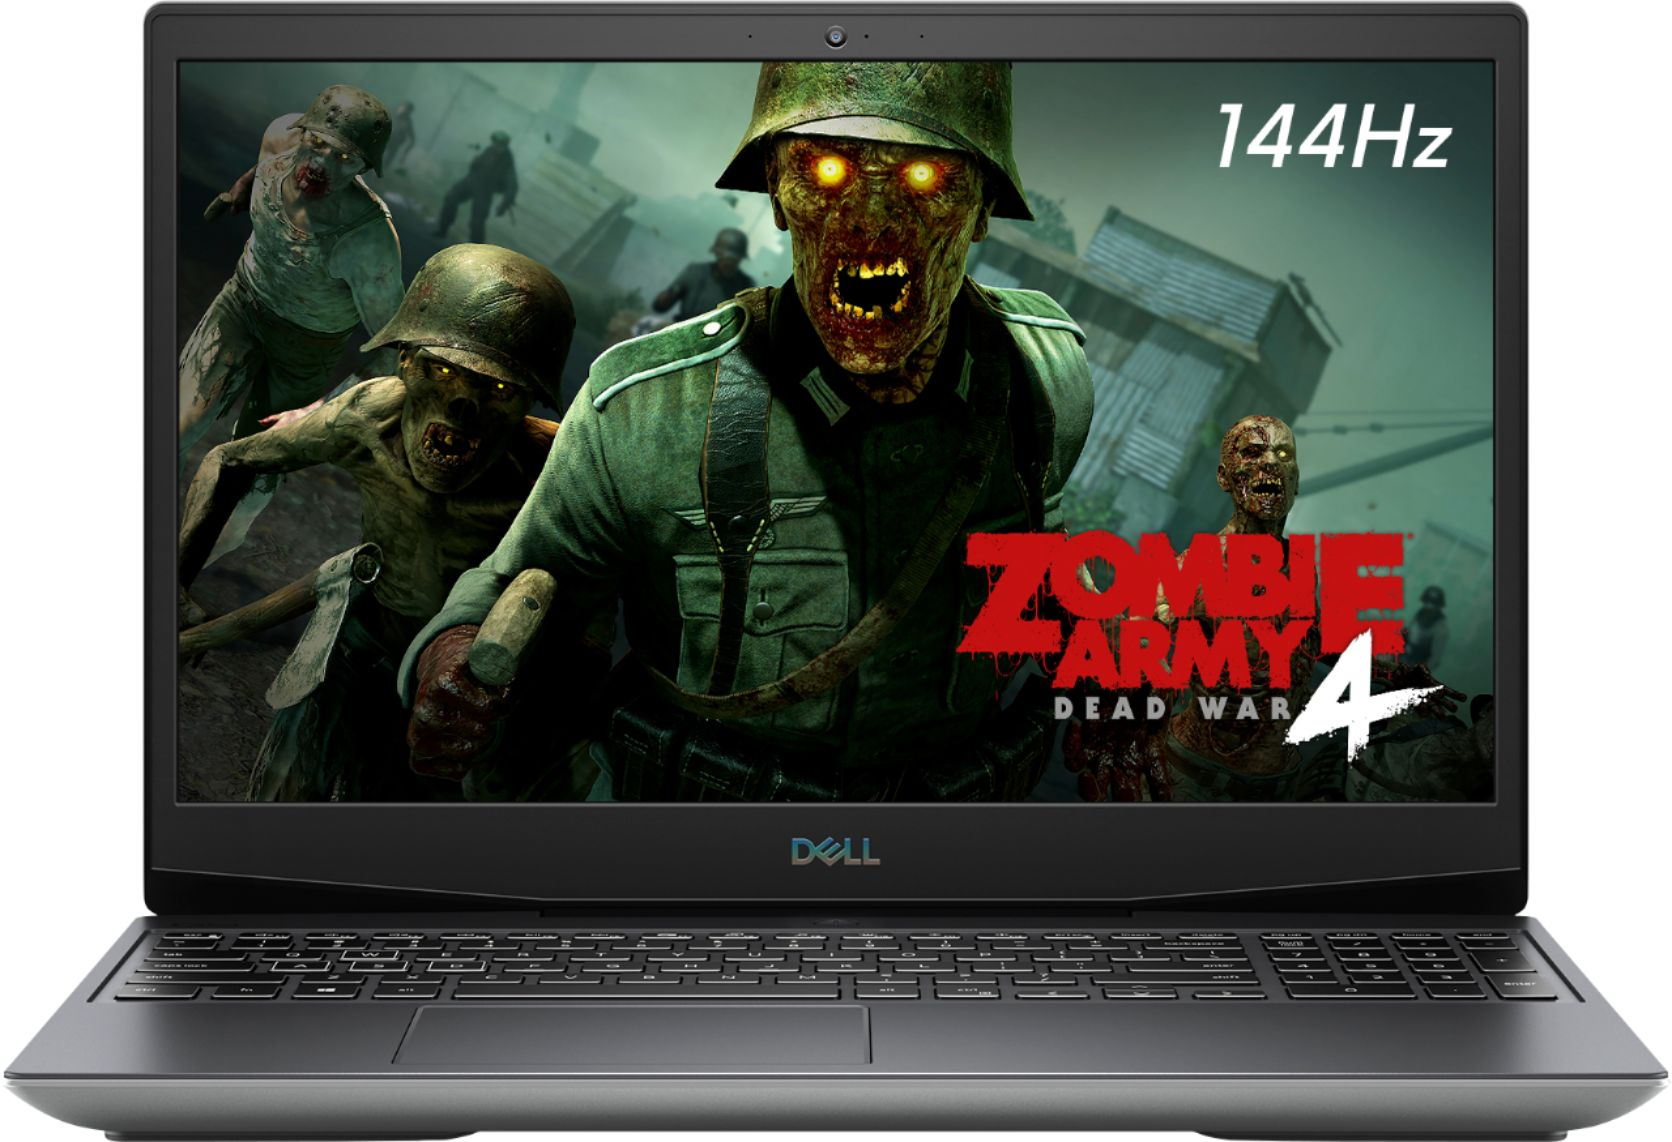 """Front Zoom. Dell - G5 15.6"""" Gaming Laptop - 144Hz - AMD Ryzen 7 - 8GB Memory - AMD Radeon RX 5600M - 512GB Solid State Drive - grey."""